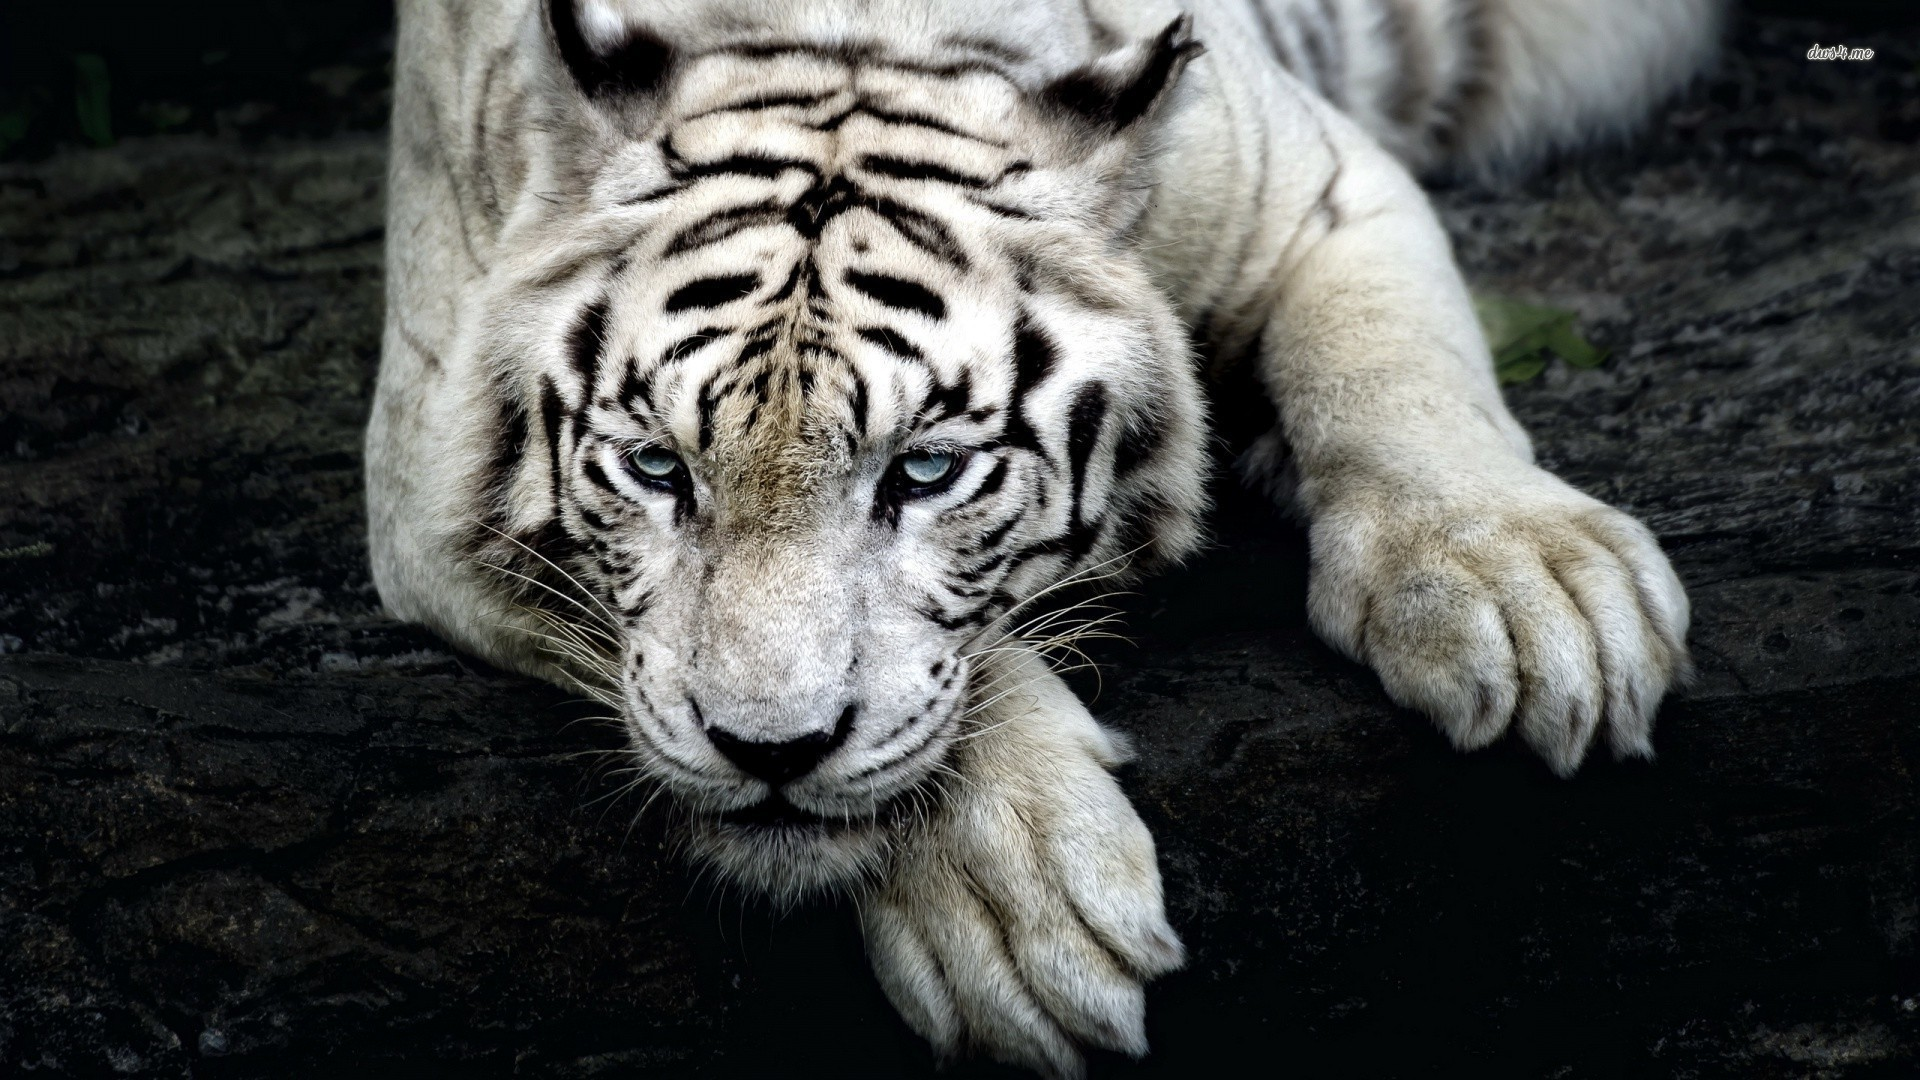 White-Tiger-Cool-Backgrounds-Wallpapers.jpg